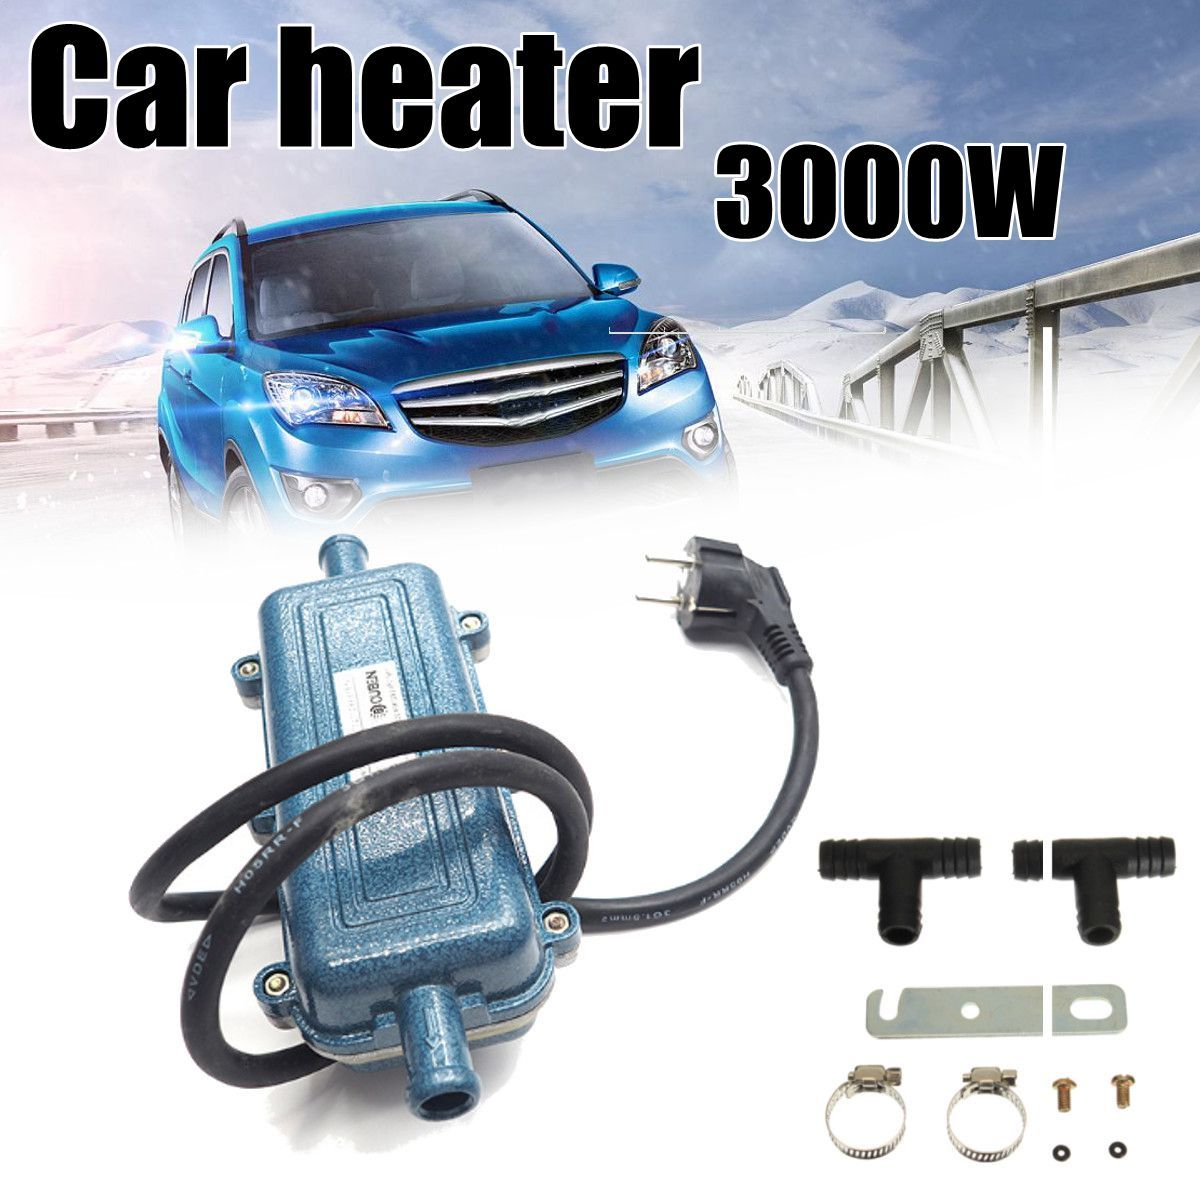 Portable Car Engine Air Heater Preheater 220V 3000W Metal Engine Cycle Heating Machine Conditioner Warmer for Motorhome Car SUV